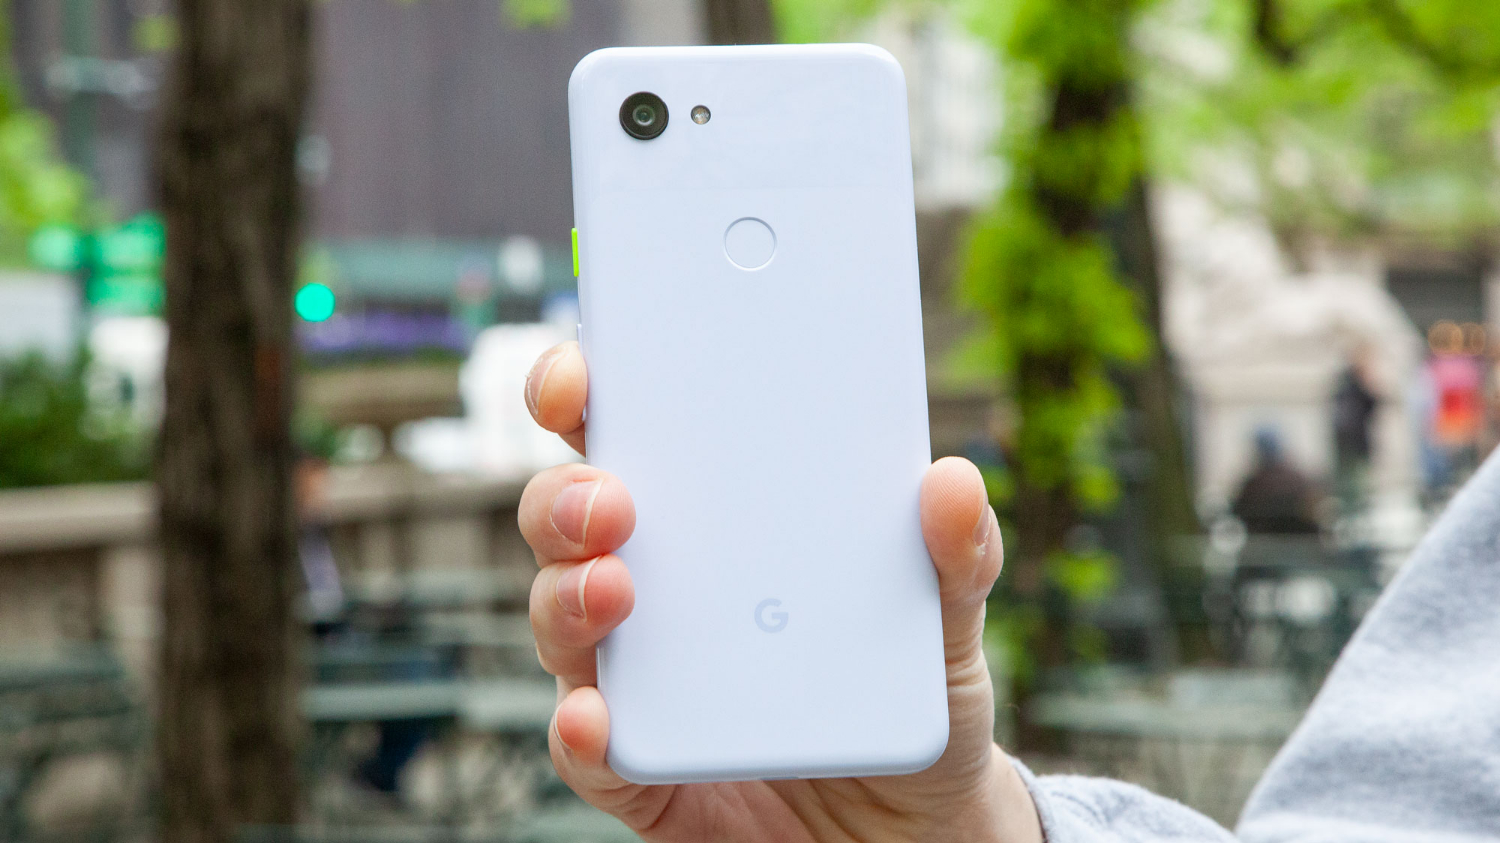 Pixel 3a and 3a XL Phones Are Randomly Shutting Down | Tom's